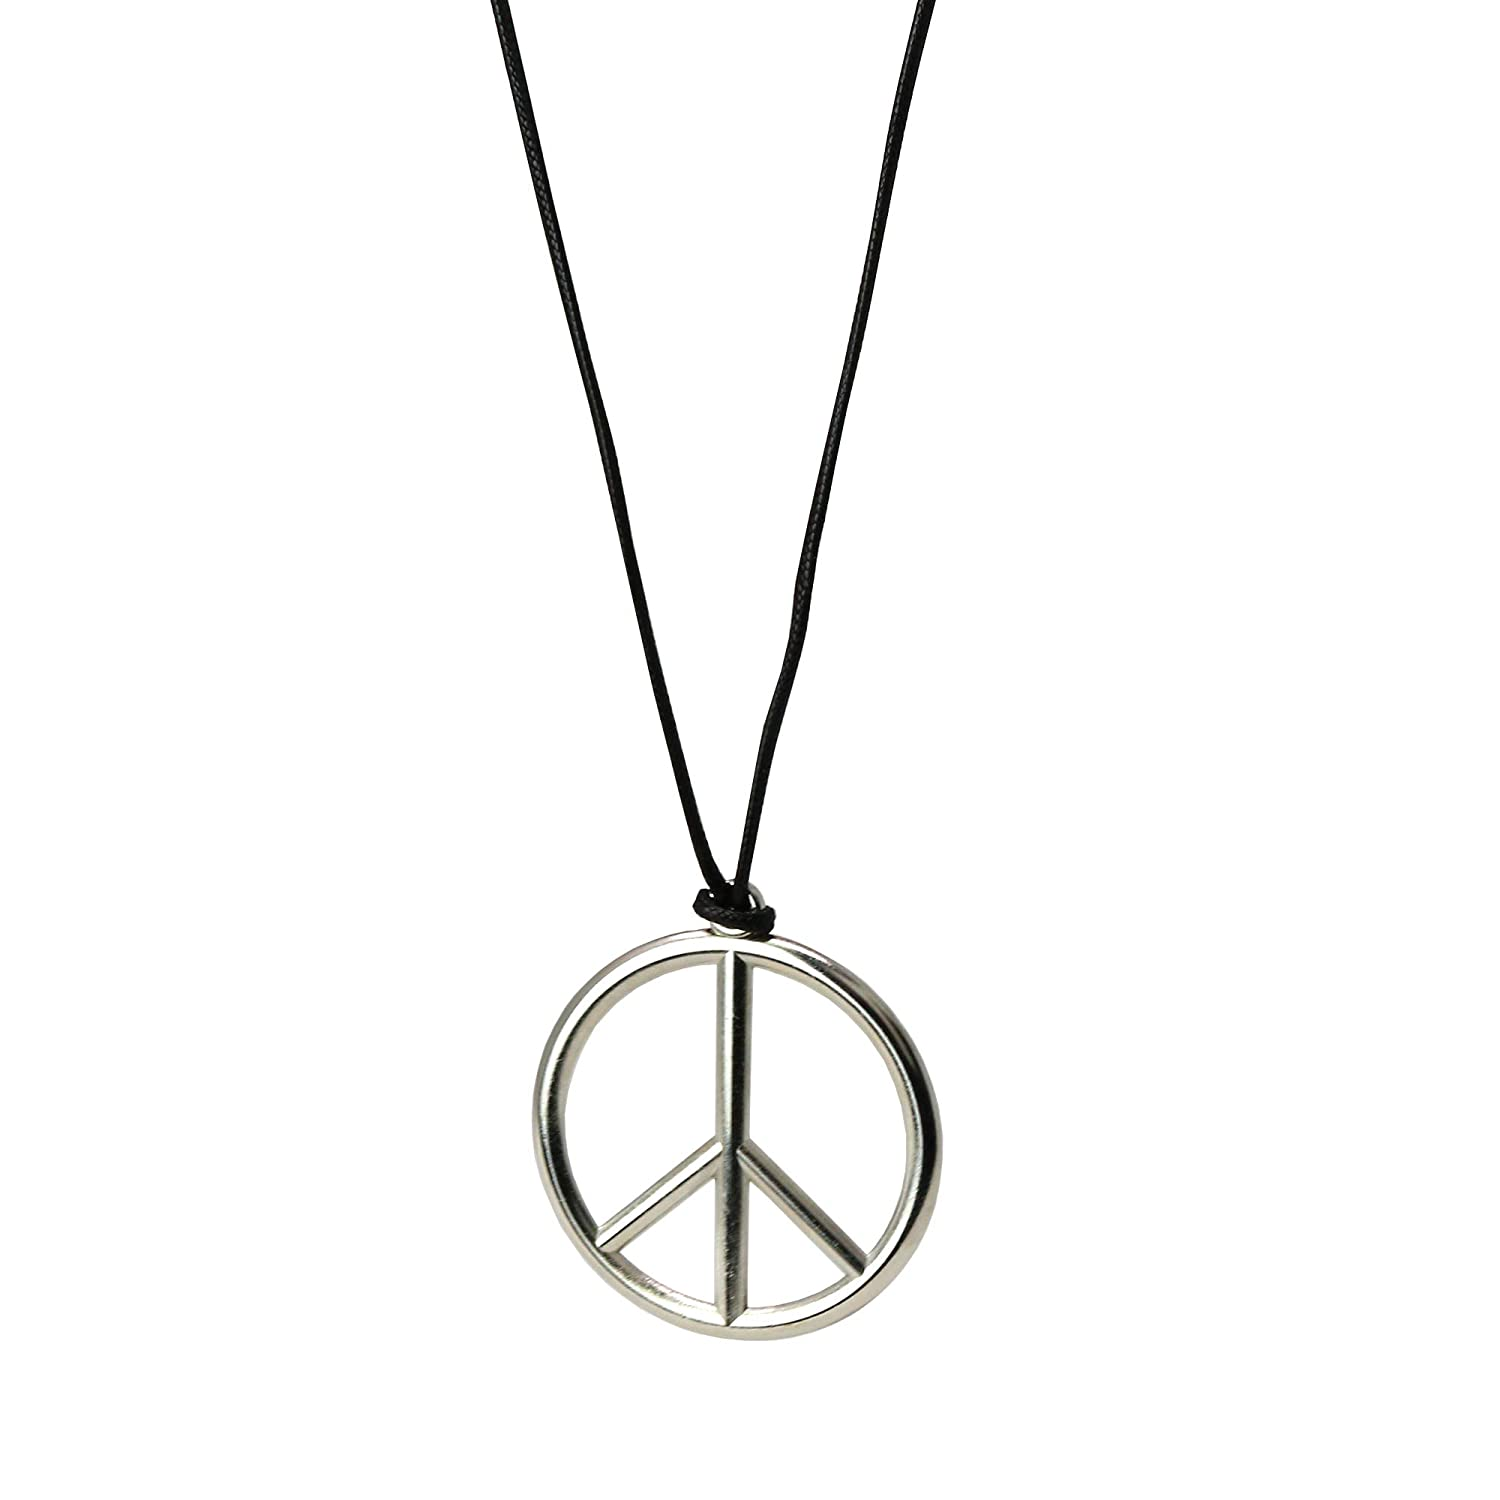 1960s 1970s Hippie Party Accessories Necklace Skeleteen Silver Peace Sign Pendant 1 Piece